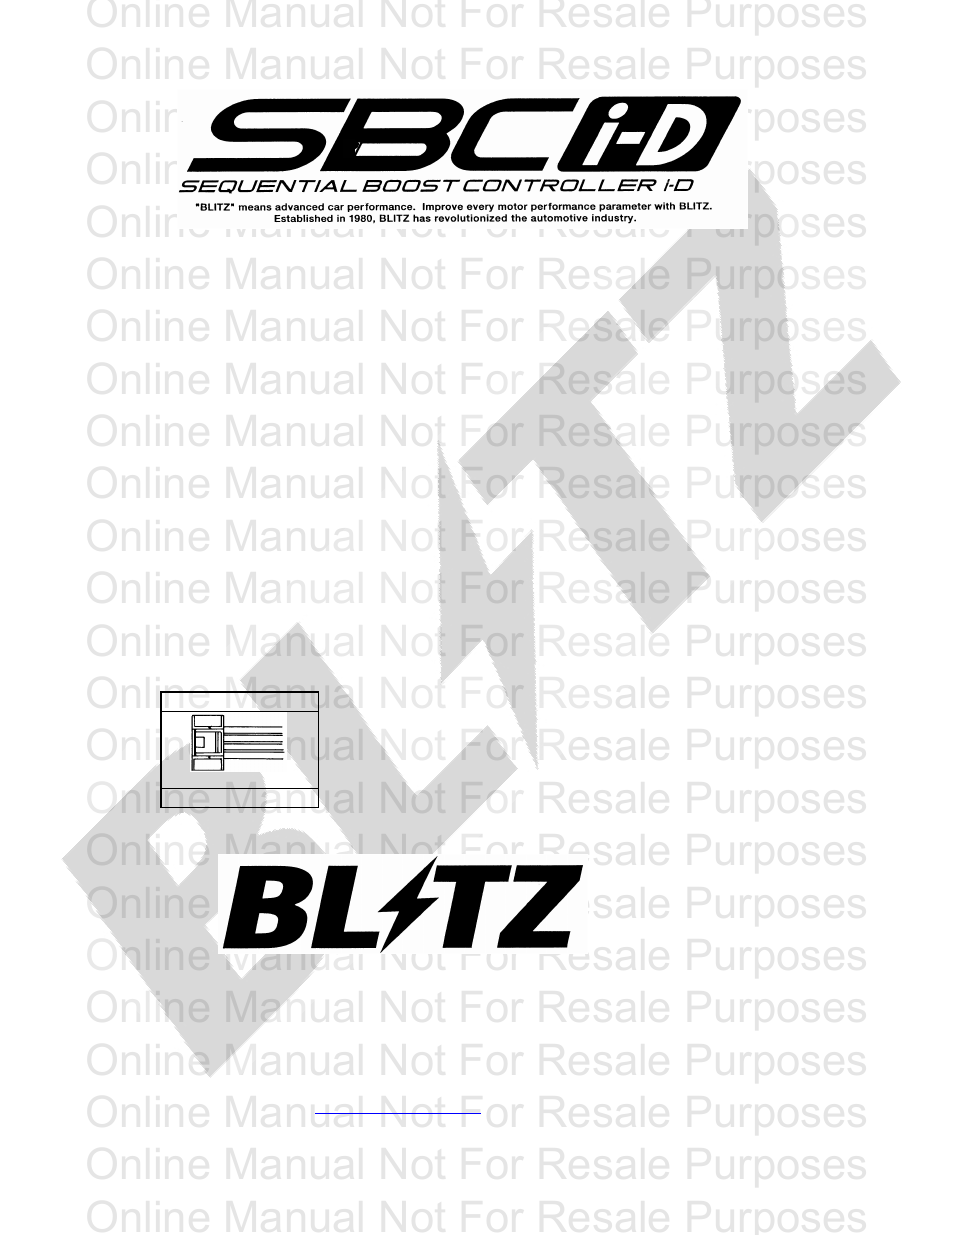 Sbc Parts Diagram Largest Wiring Database 1885 Chevy Hei Distributor Blitz I D Optional Harness User Manual 2 Pages Rh Manualsdir Com Oil System